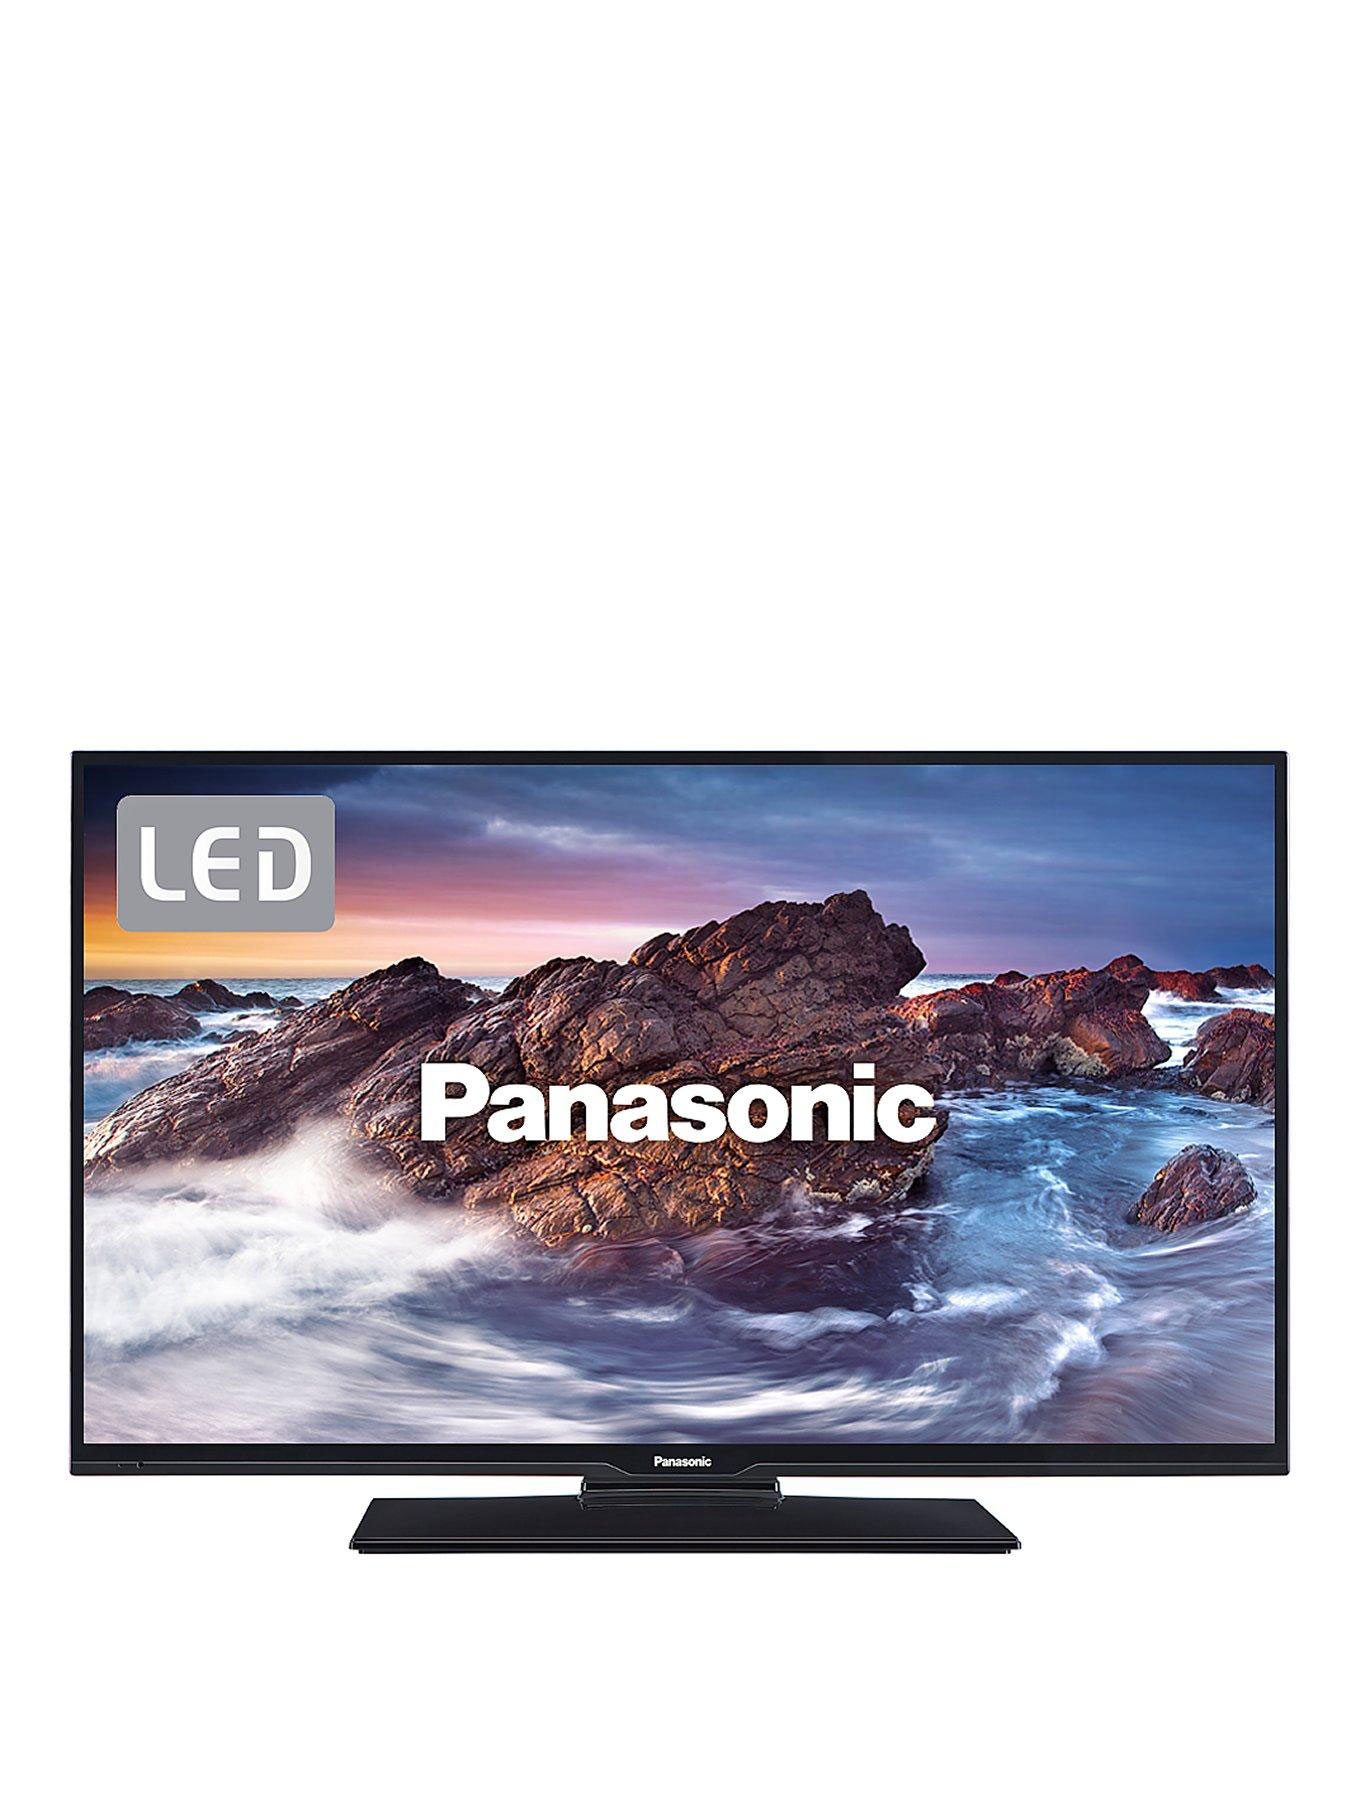 Panasonic Tv Shop For Cheap Televisions And Save Online